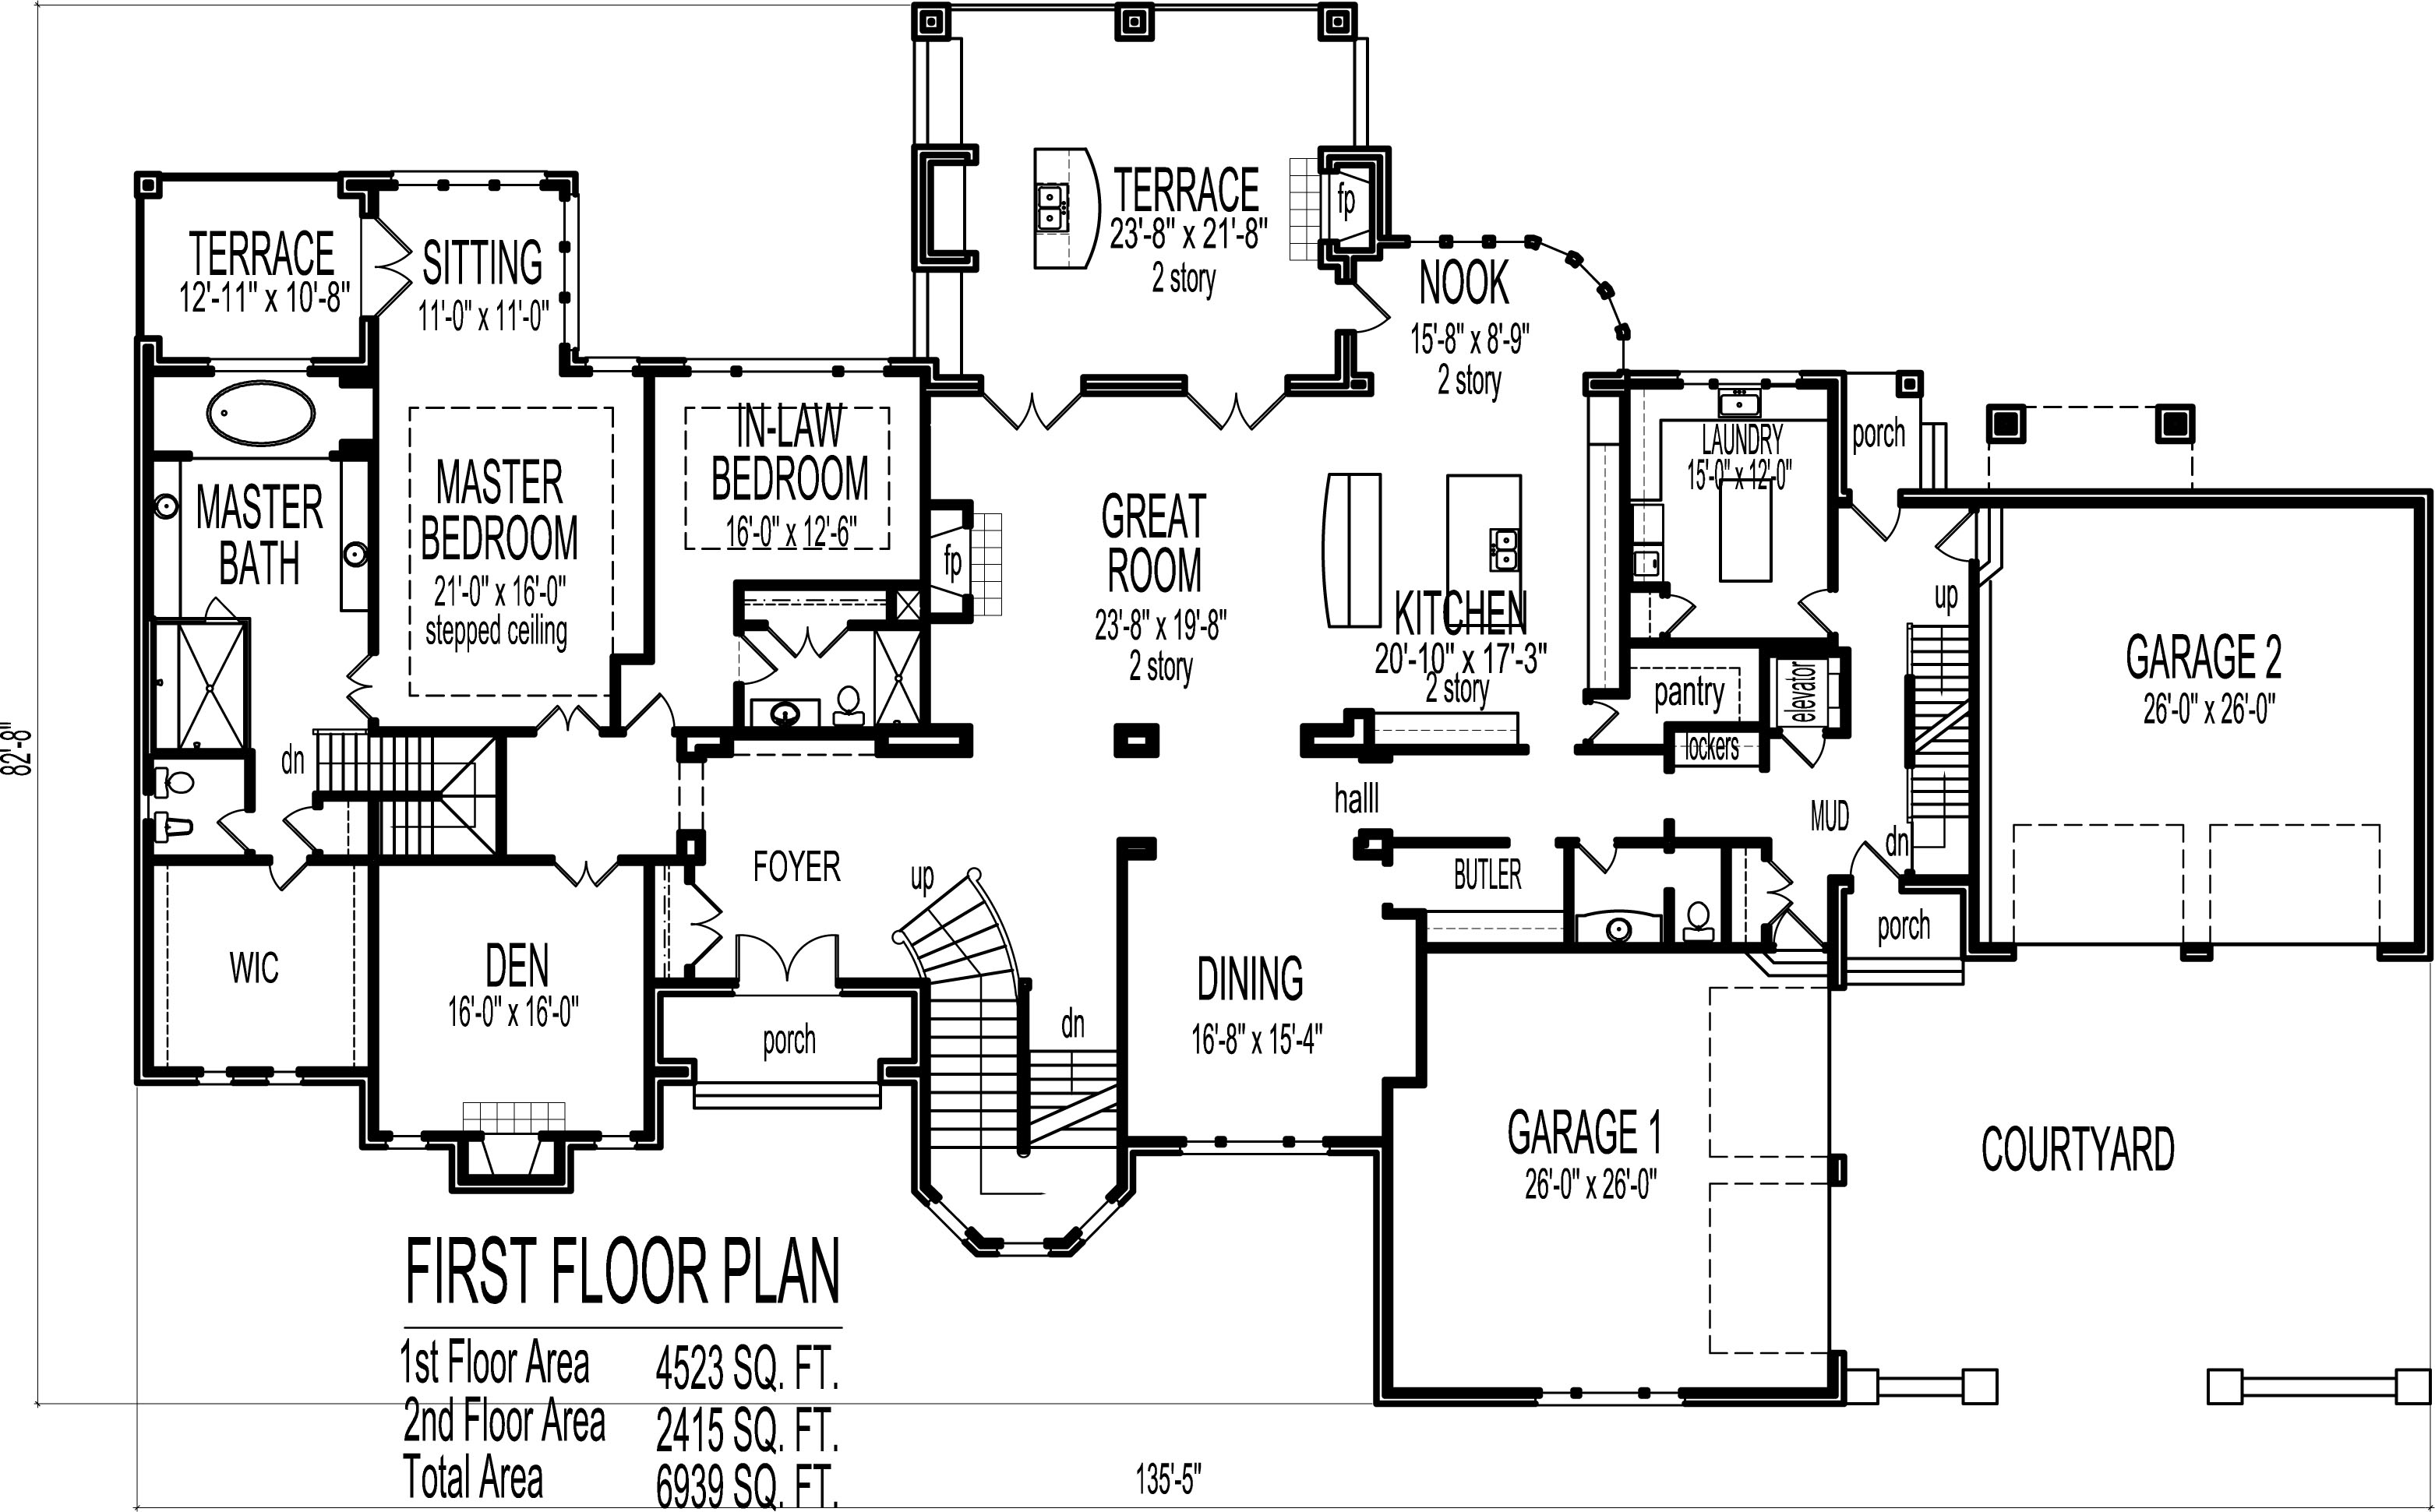 Mansion house floor plans blueprints 6 bedroom 2 story 6 bedroom house designs